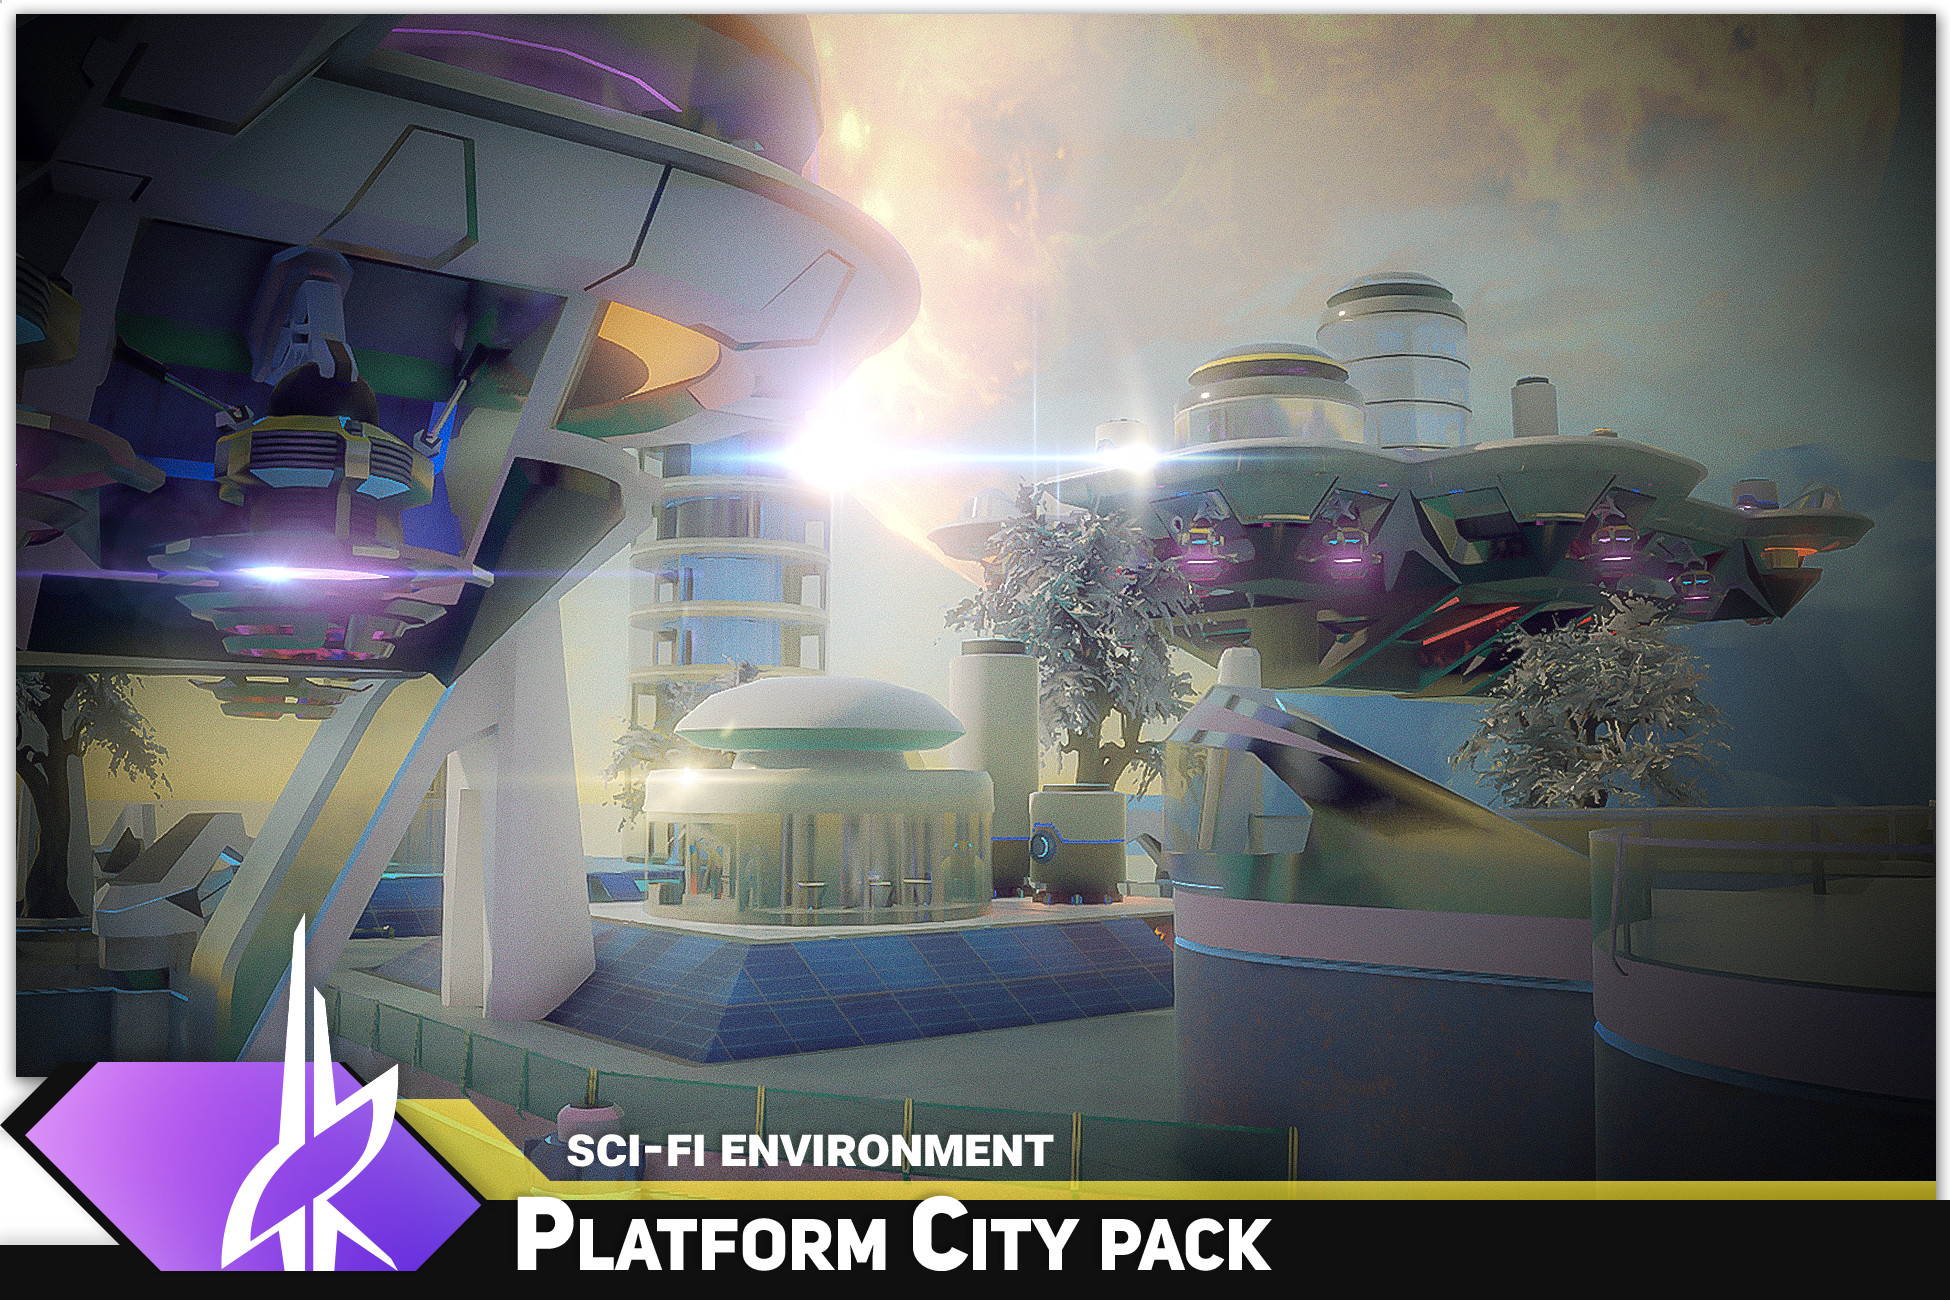 SciFi Platform City